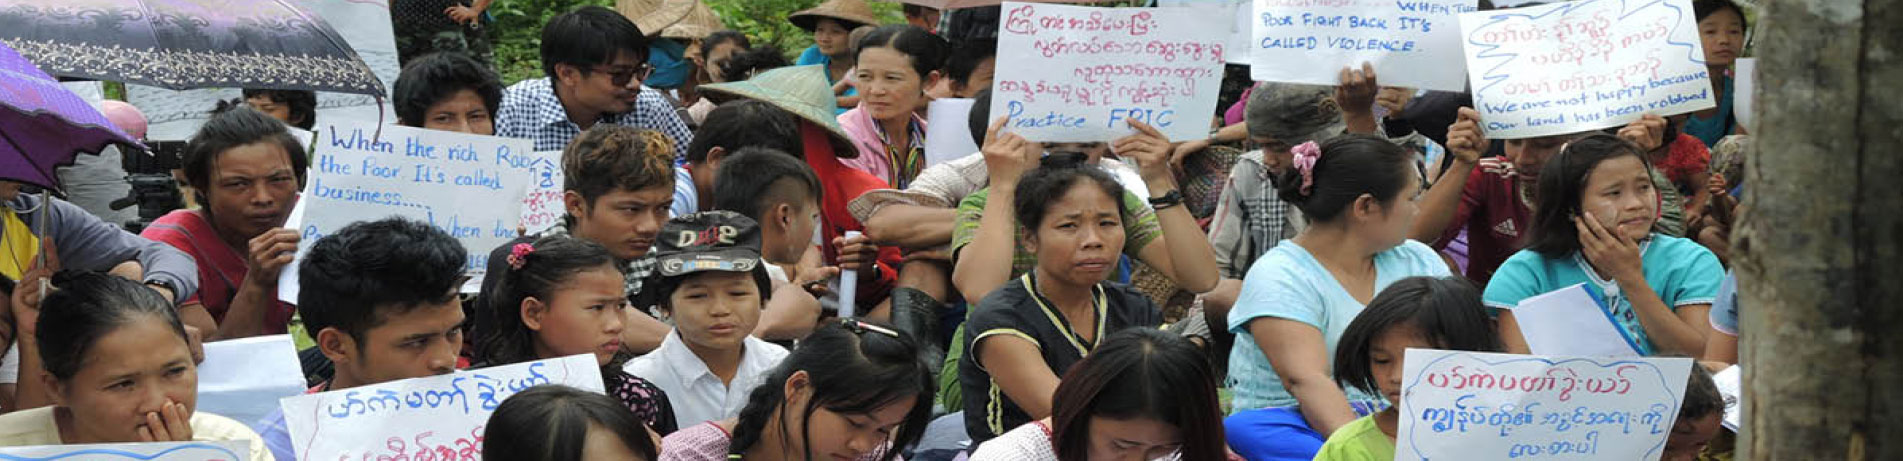 Villagers in the Karen community, Myanmar, stage a peaceful protest